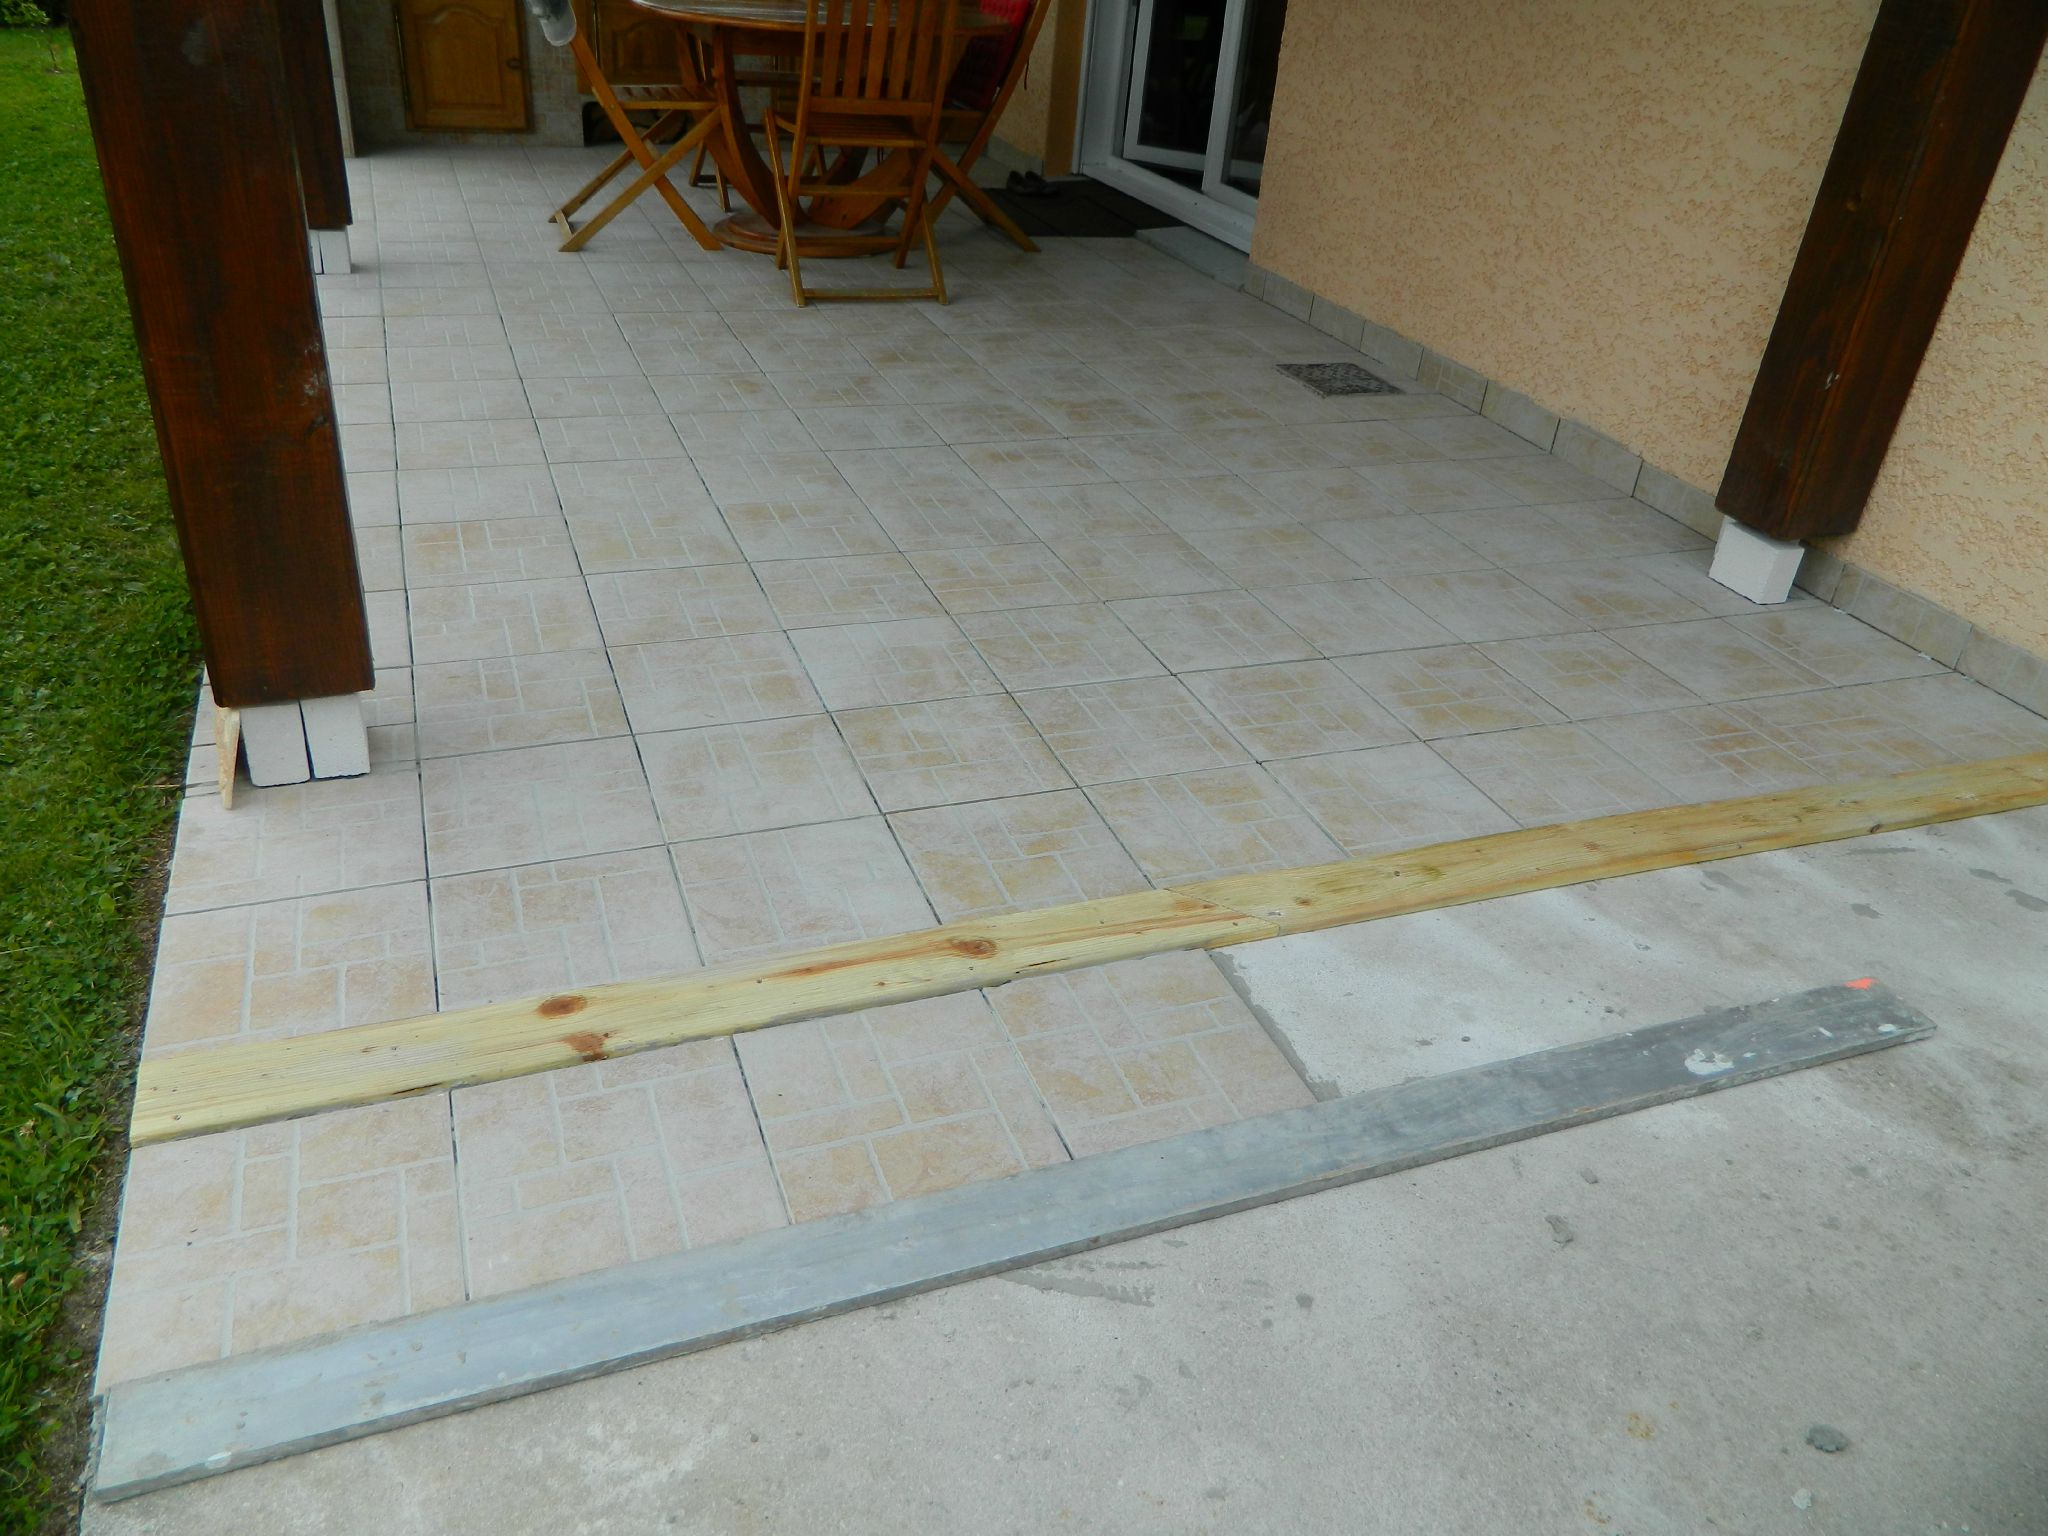 Parement el matos constructions et passions for Joint pierre exterieur terrasse